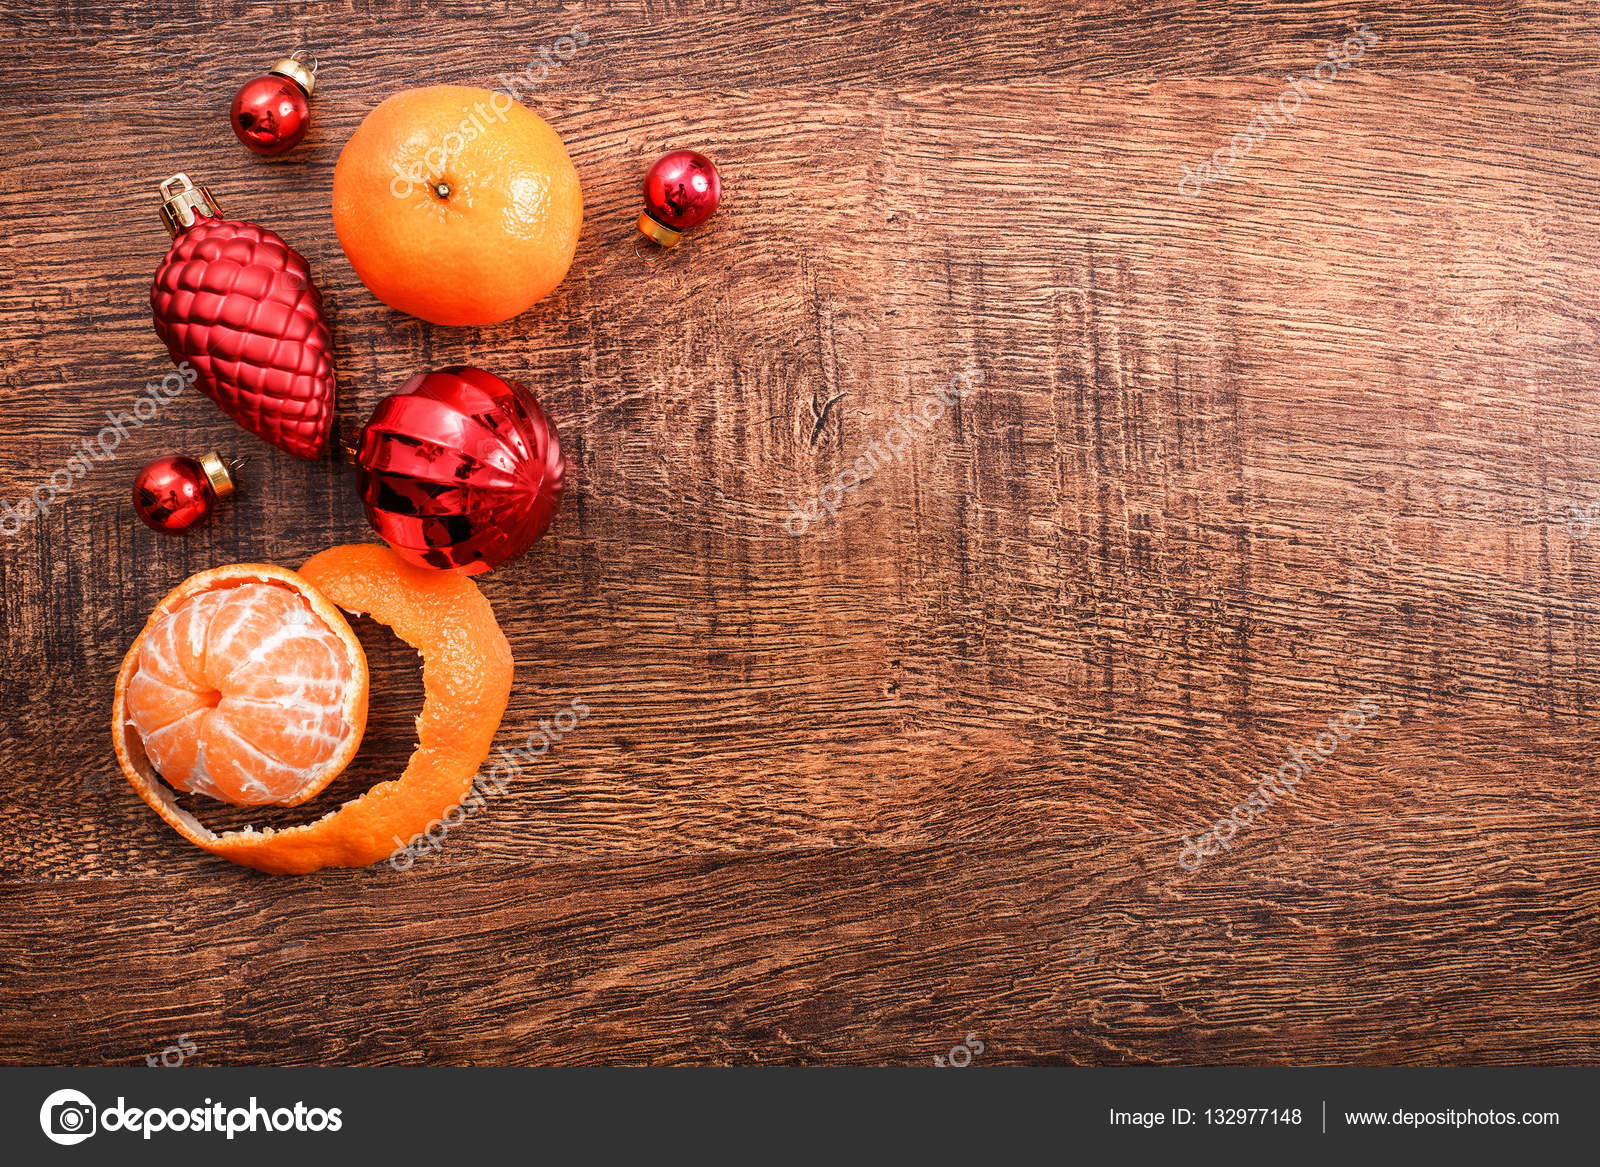 Red Christmas ornaments, food decor and fir tree branch on a rustic wooden background.